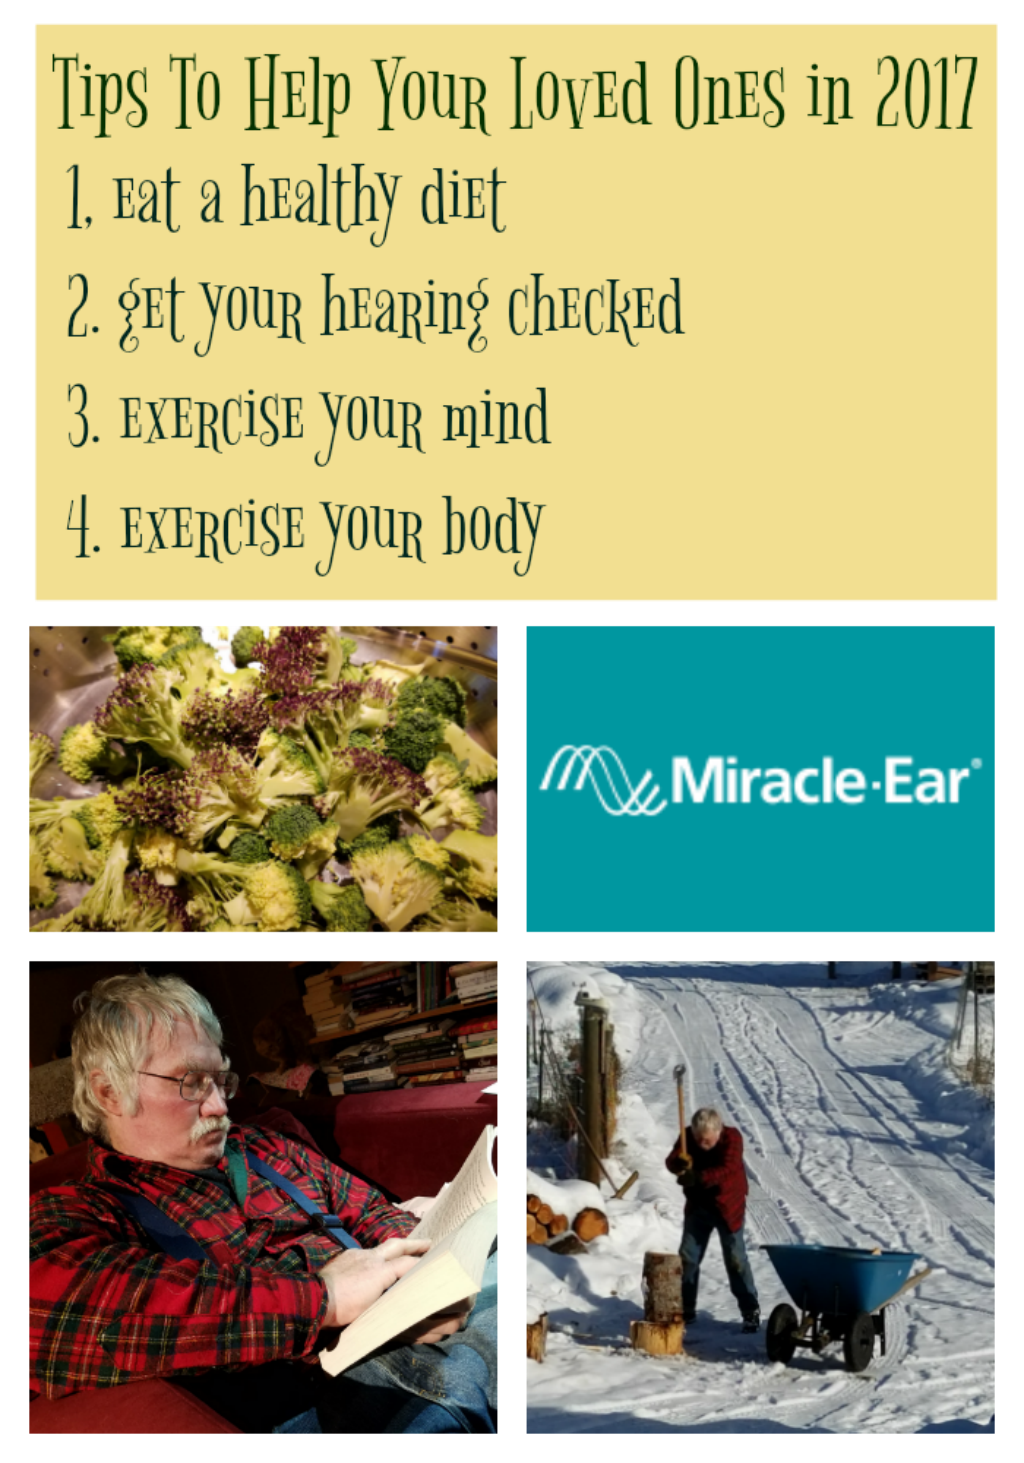 Miracle-Ear, Improve Hearing, #HearABetterDay, #AD